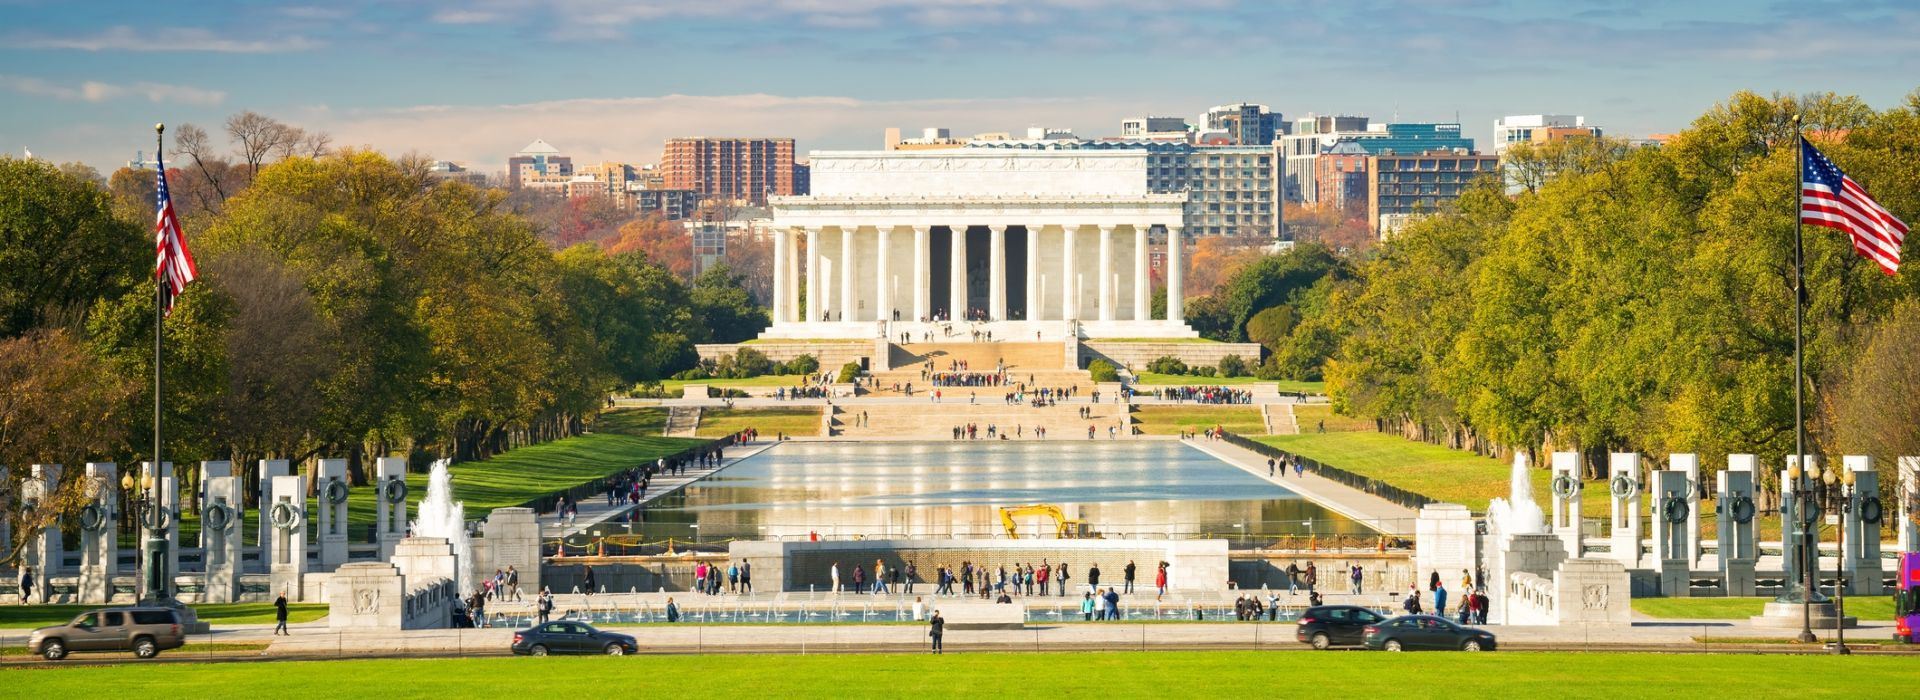 Cultural, religious and historic sites Tours in Philadelphia